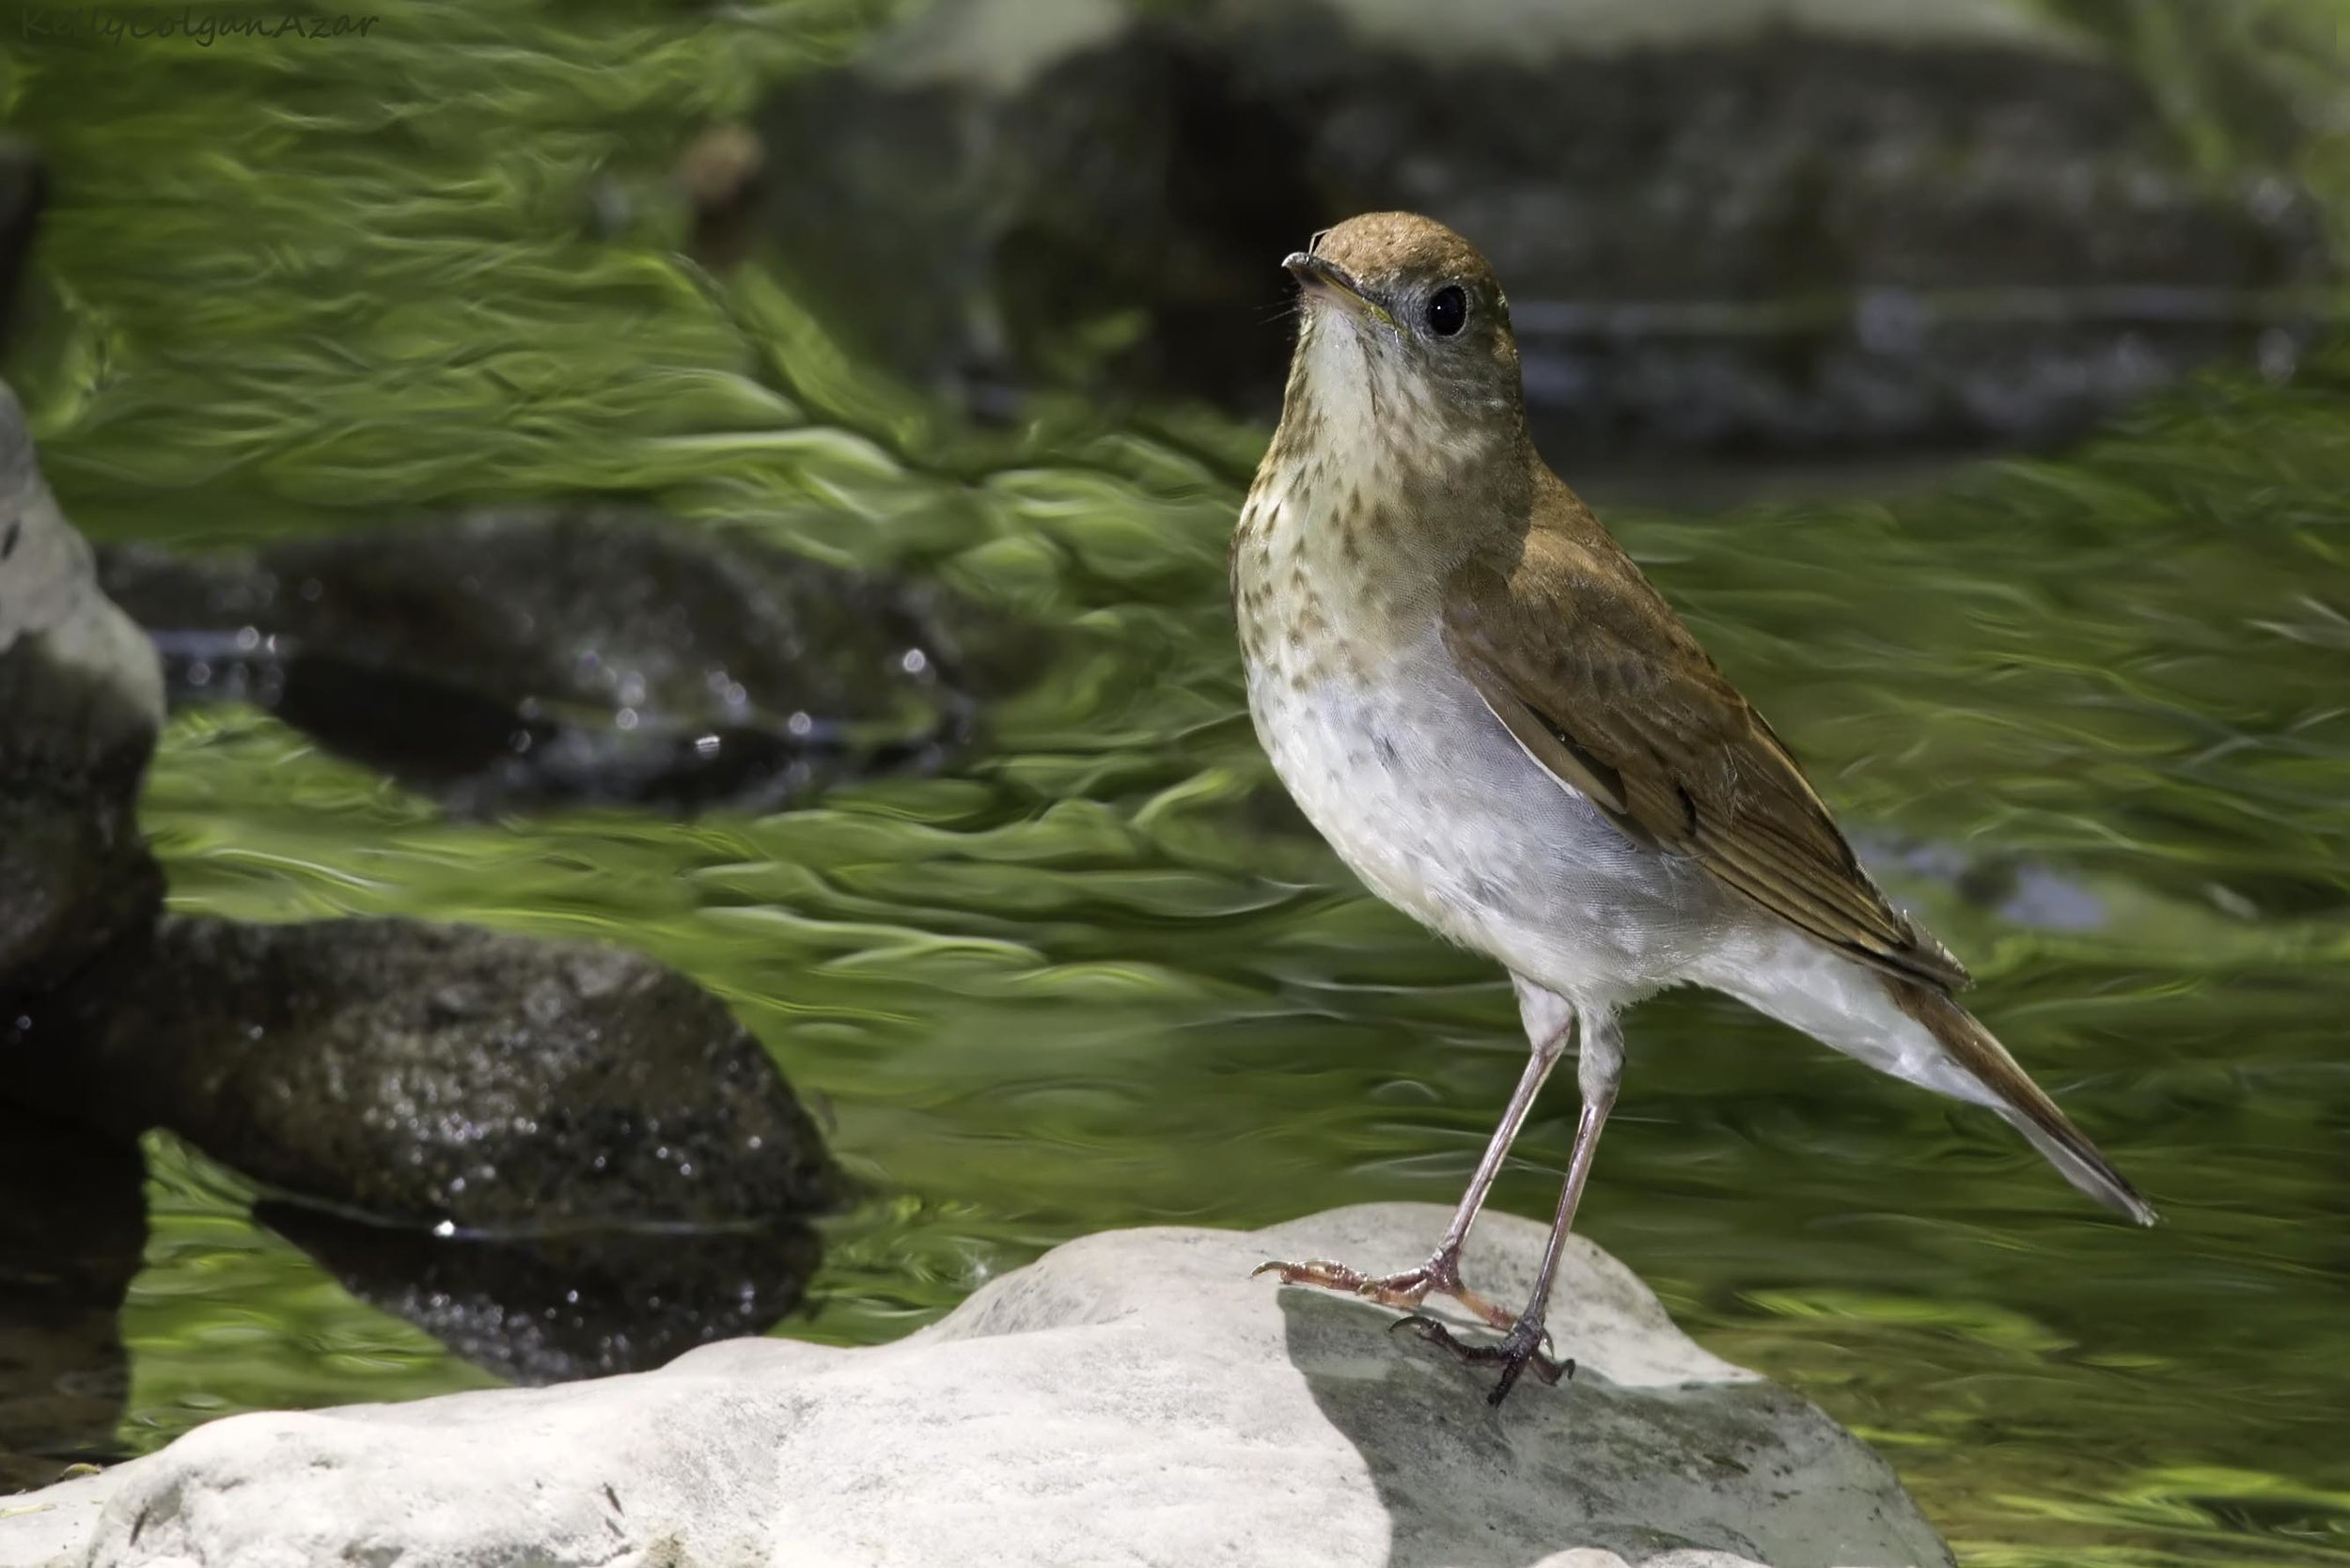 """- Veery (Catharus fuscescens)Veeries live mostly in deciduous forests that are wet. Their diet consists of insects, small amphibians, and berries. They weigh 1-1.9 oz. and have a wingspan of 11-11.4 oz. Veeries sing a trill followed by """"wheew""""s. They are protected on the US Migratory Bird list.Photo Credits: Kelly Colgan Azar"""